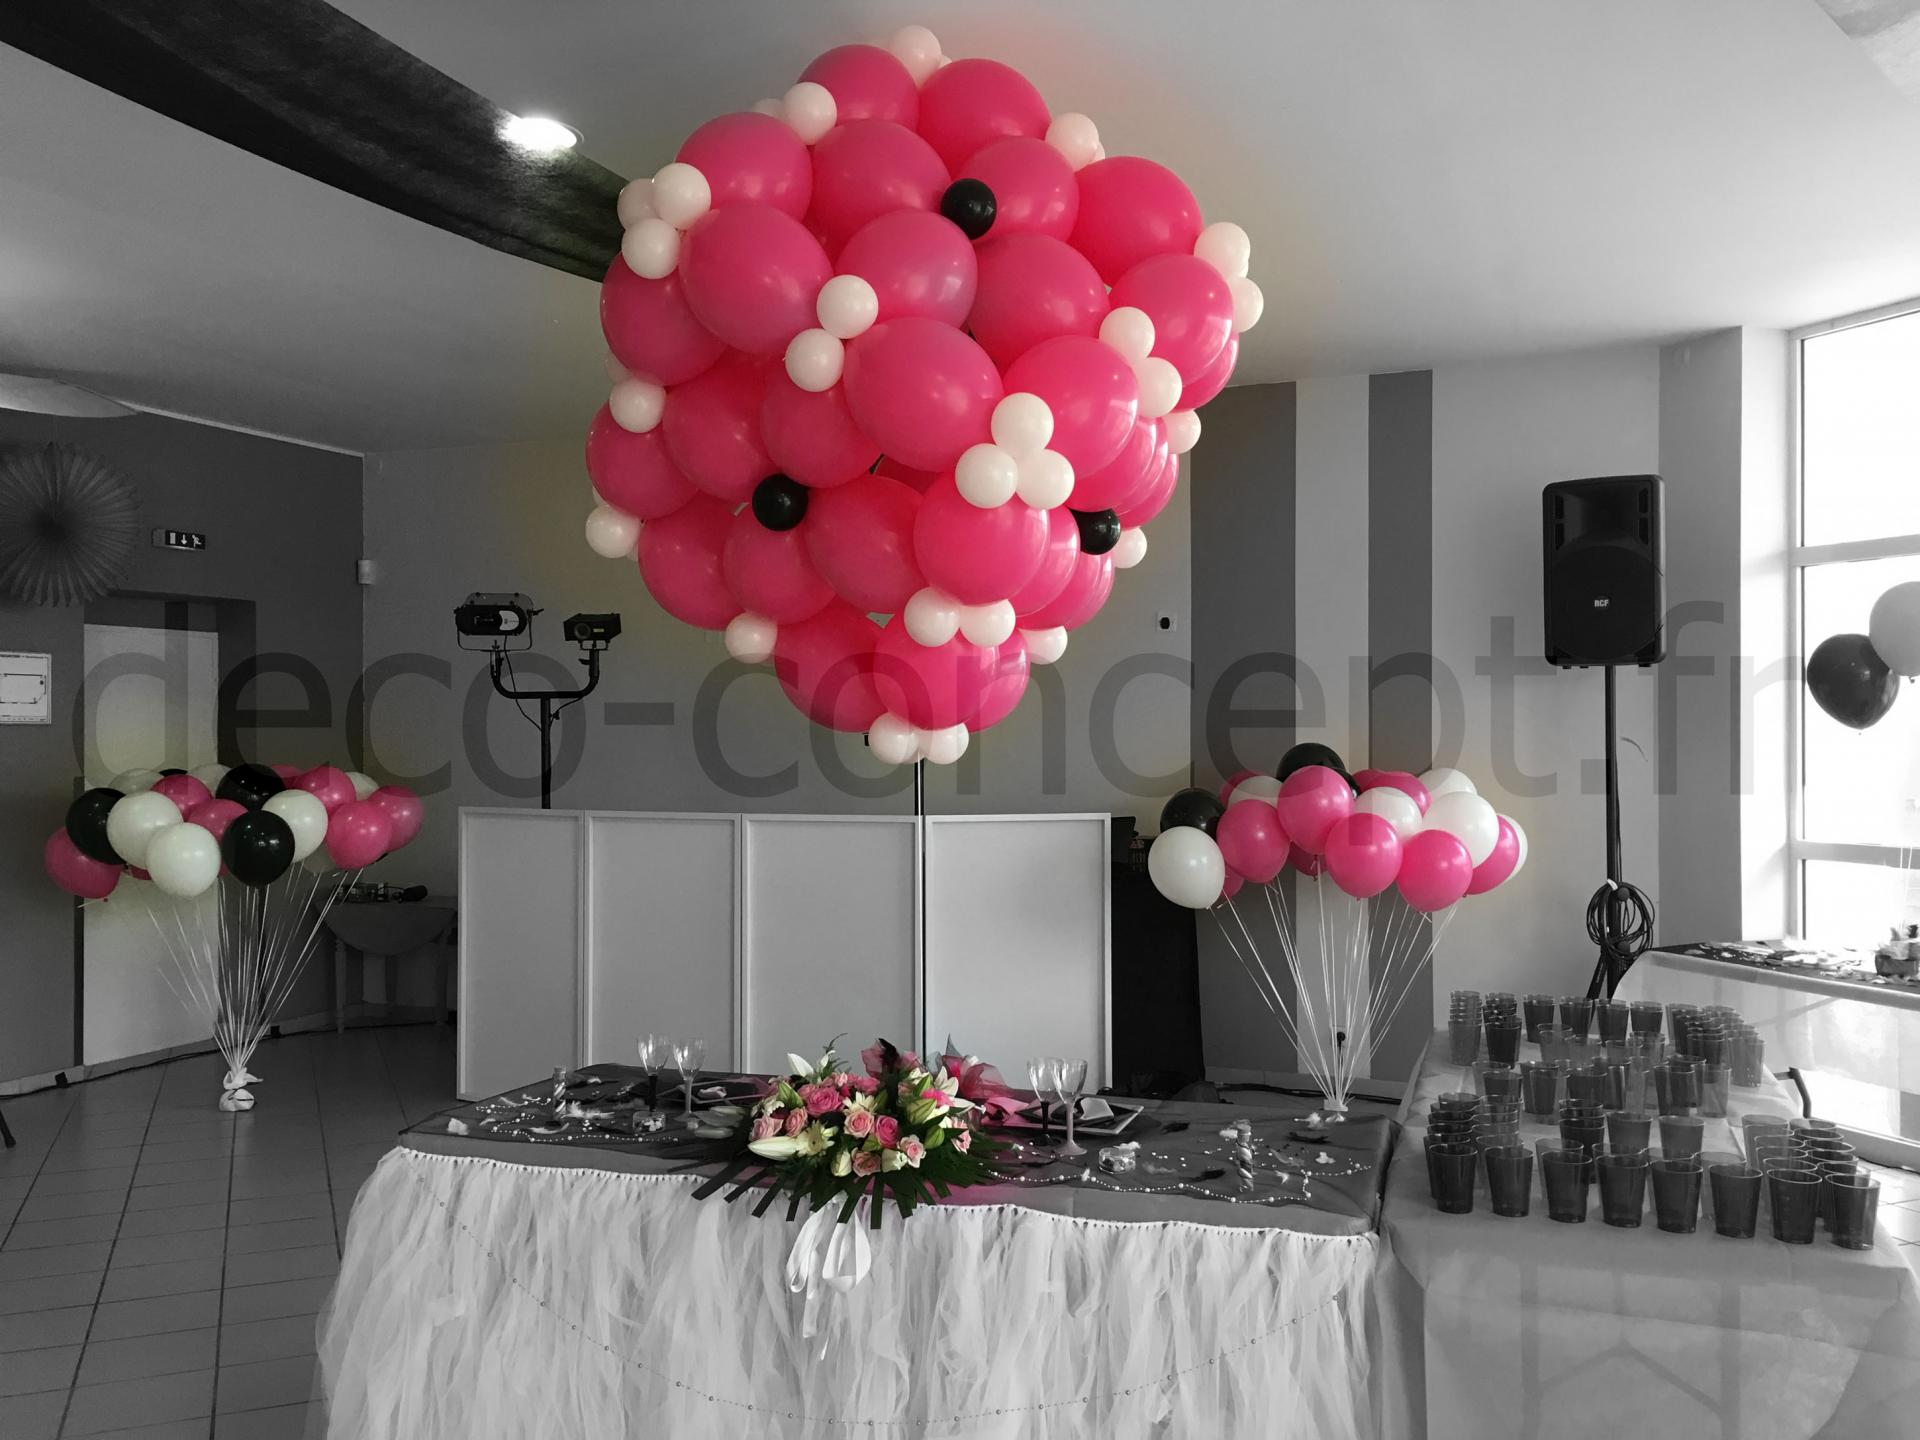 d coration ballons pour mariage prestation d cor en ballon. Black Bedroom Furniture Sets. Home Design Ideas